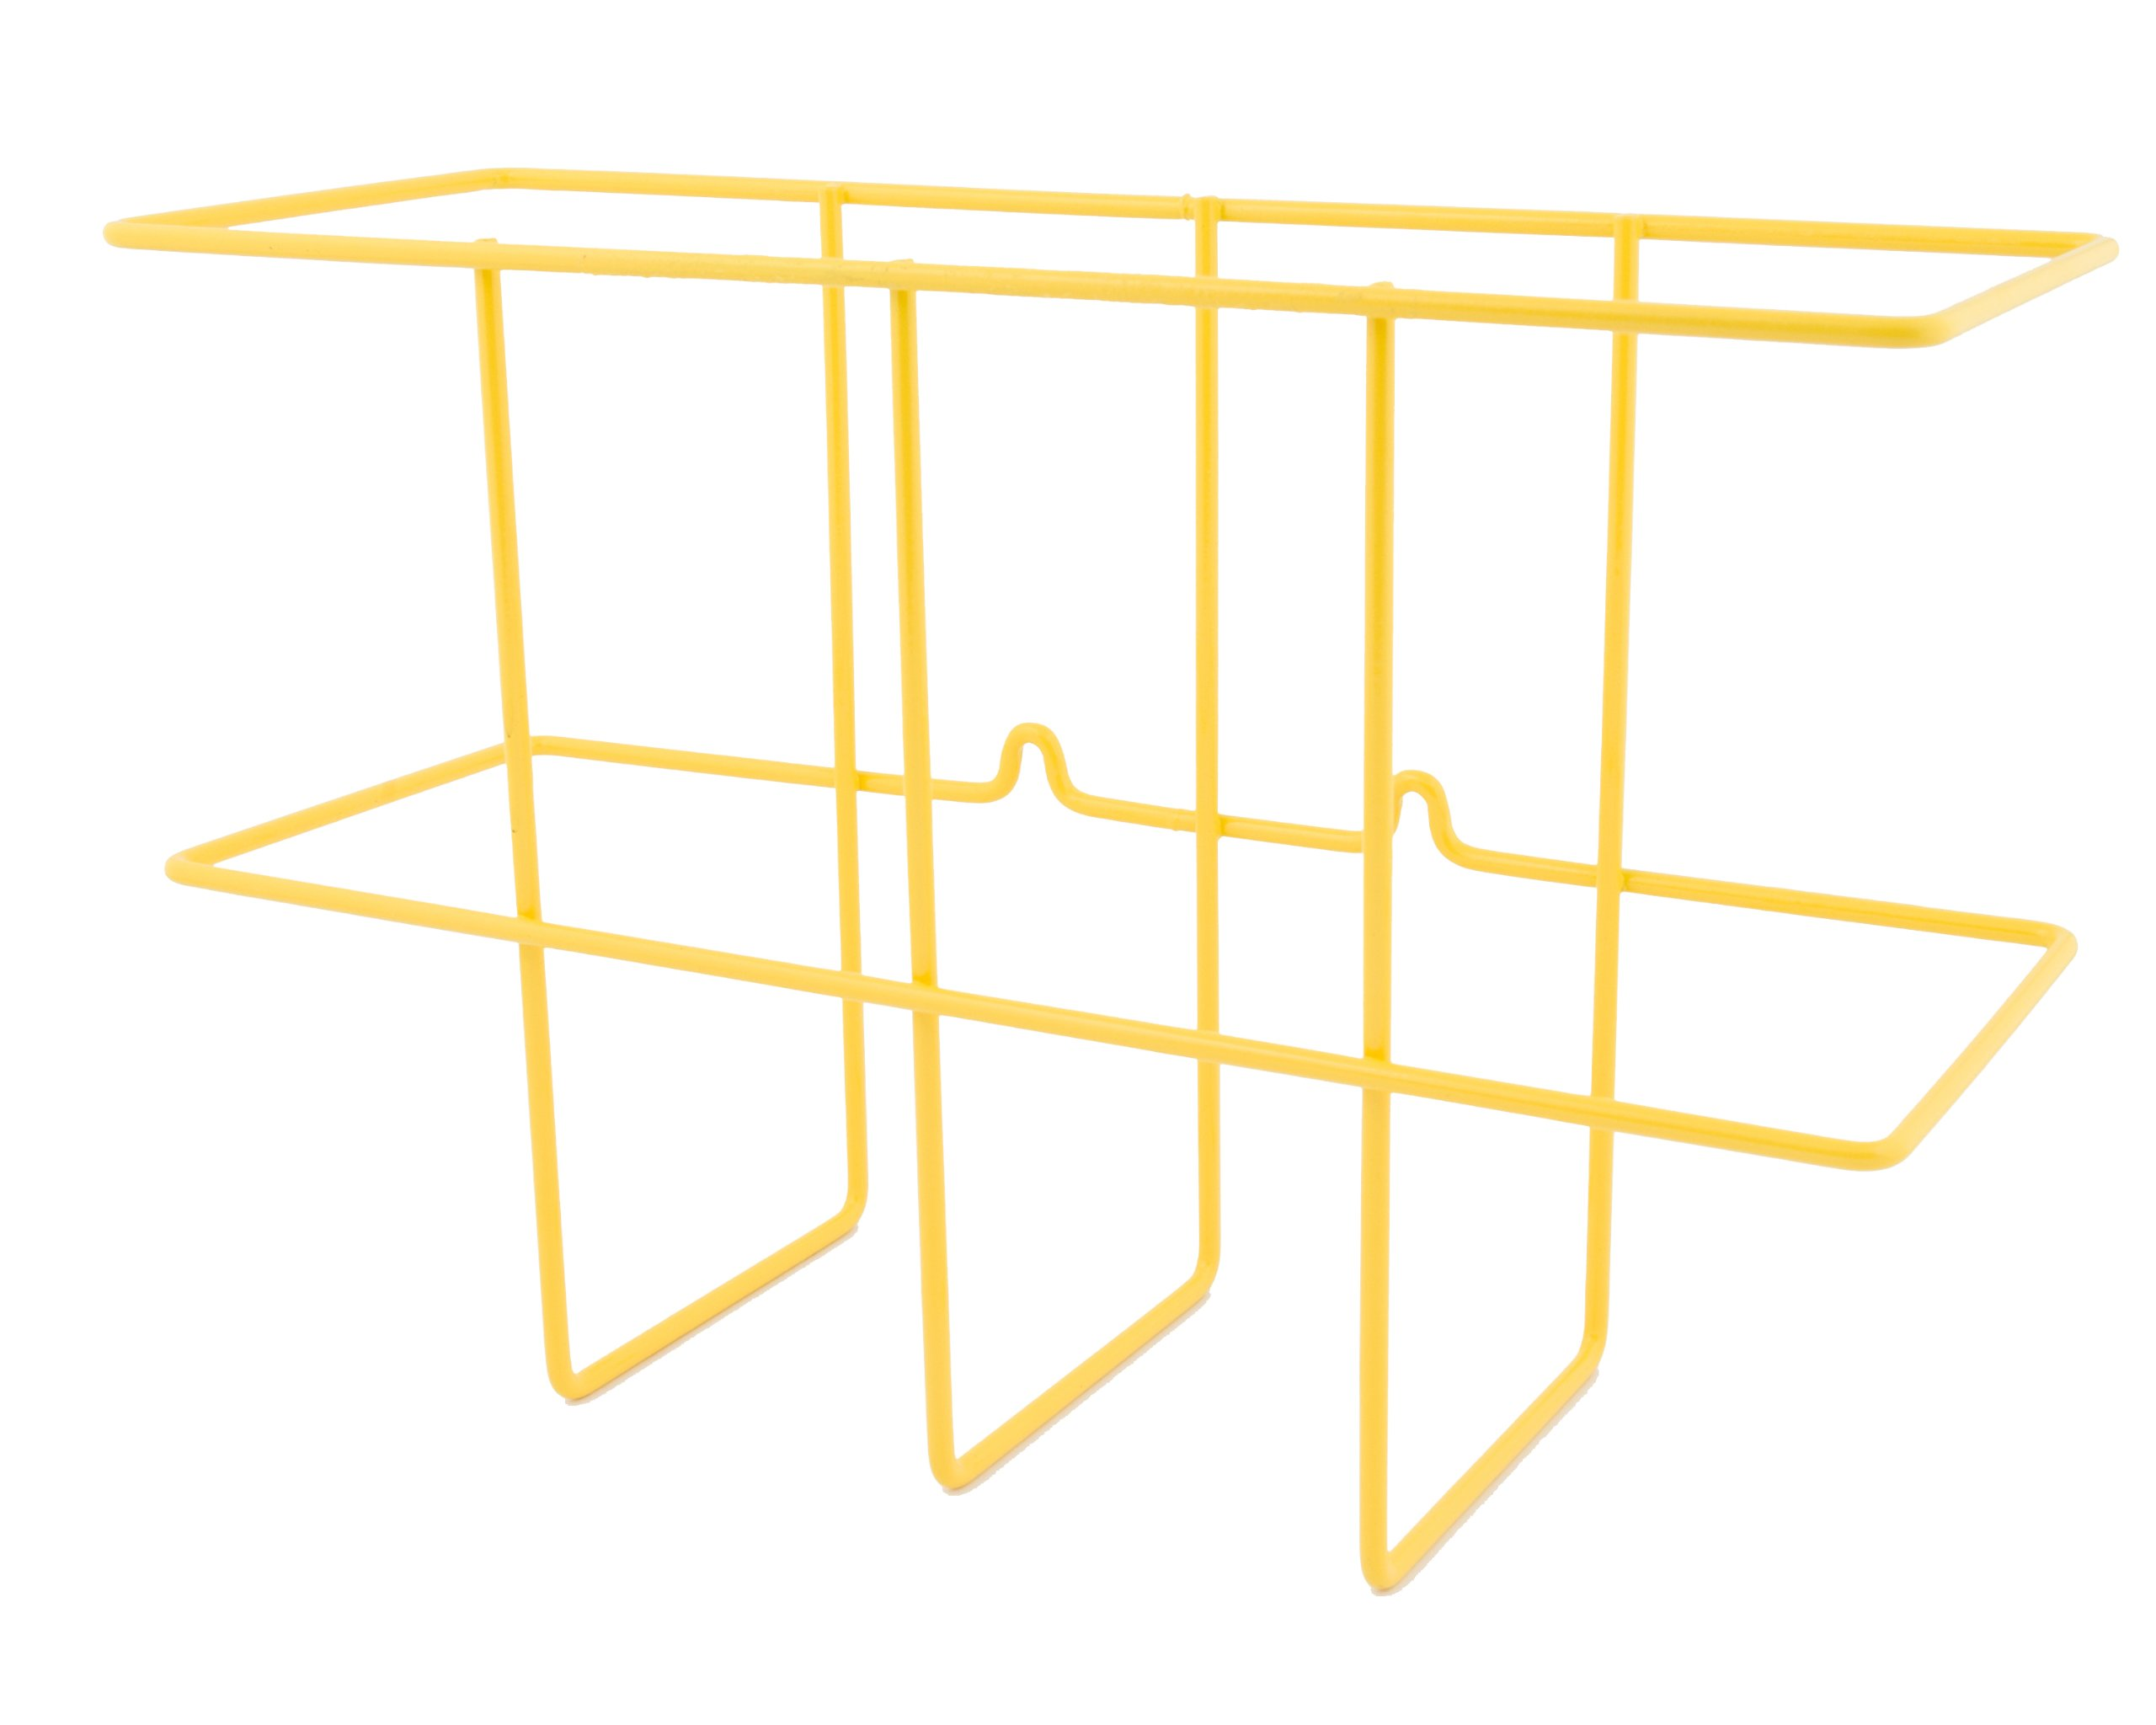 ZING 7199 Eco Binder Holder, Wire Wall Rack, Hardware Included by Zing Green Products (Image #1)